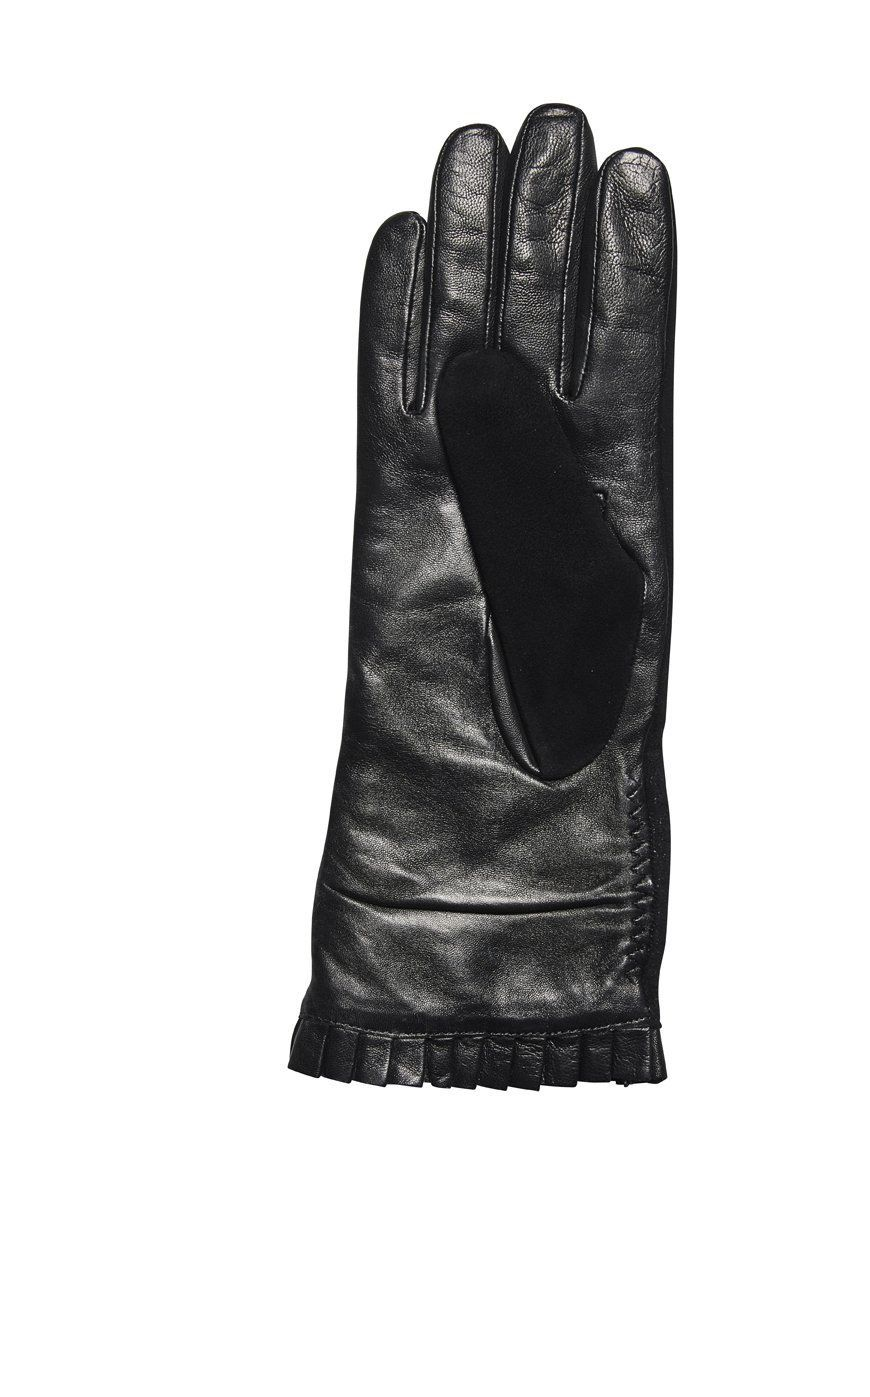 San Diego Hat Company: Women's sheep leather gloves